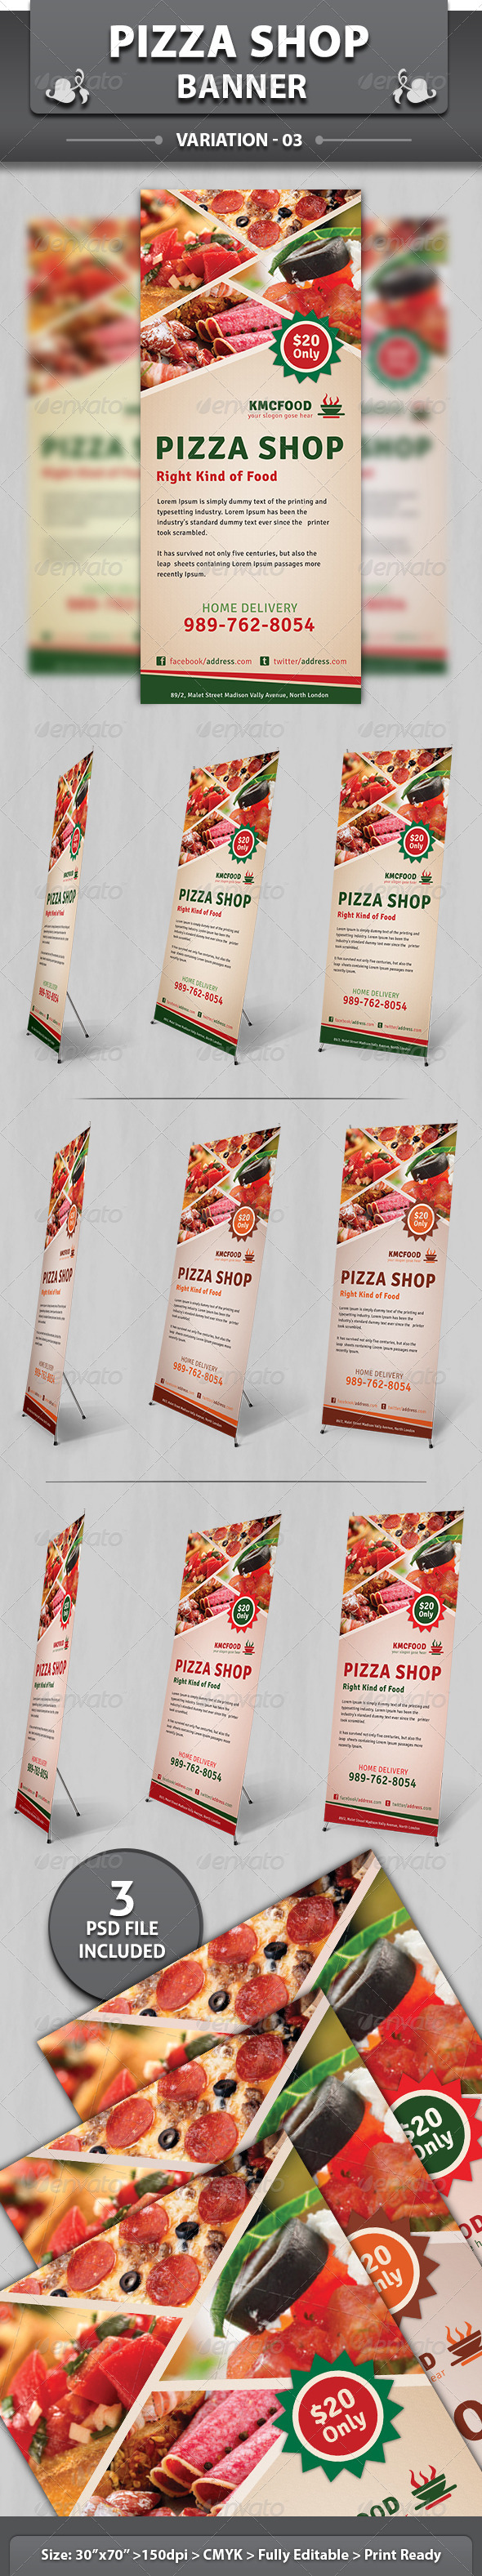 Restaurant Business Banner | Volume 2 - Signage Print Templates